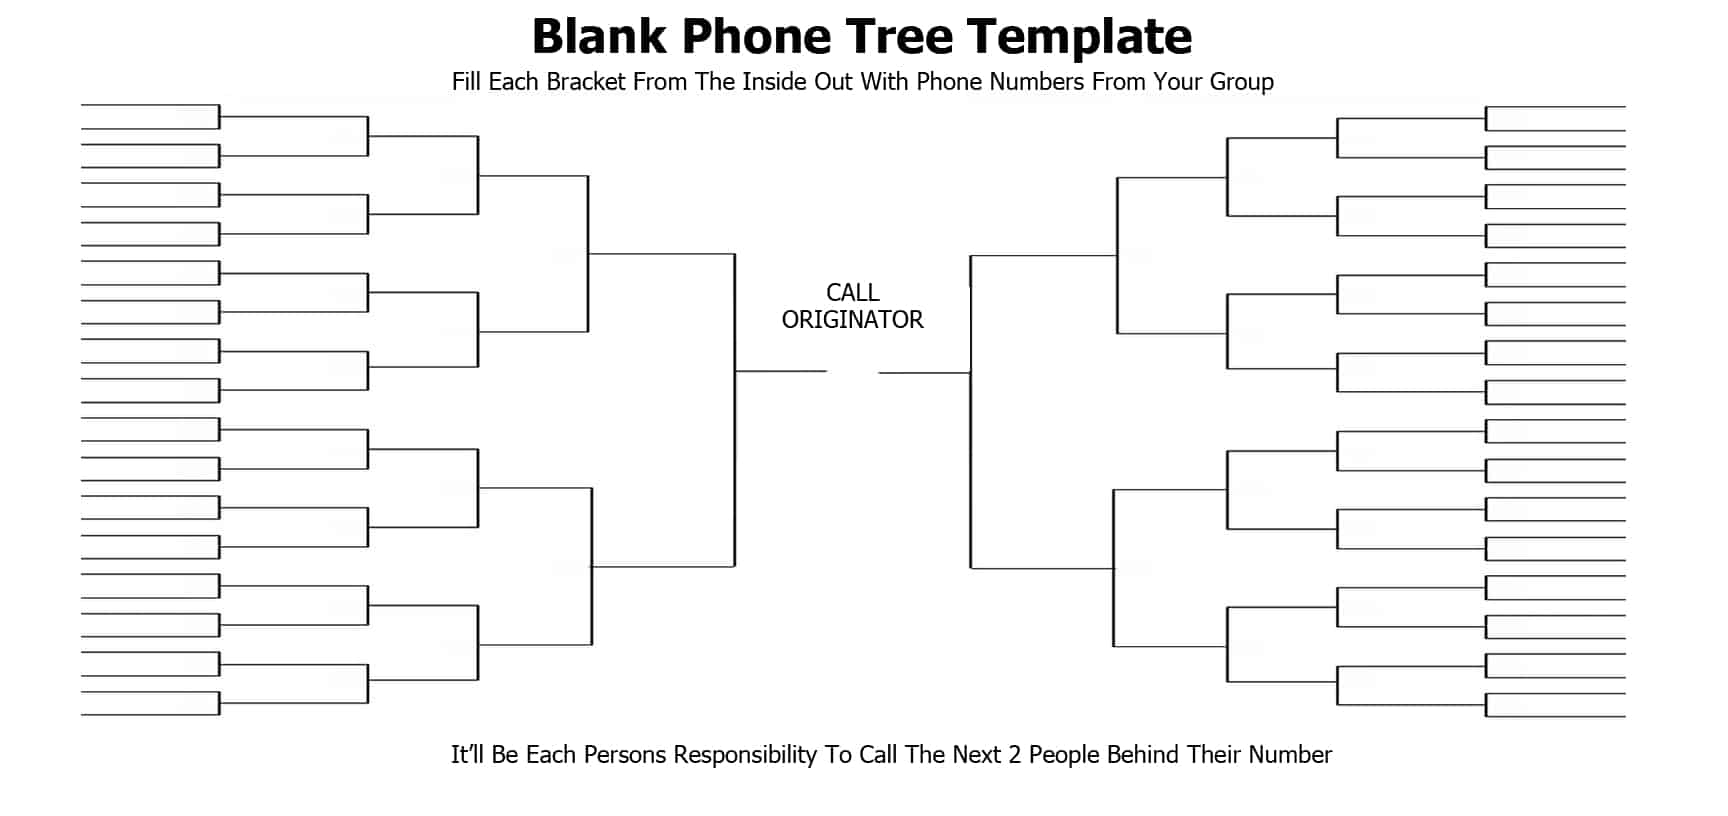 5 free phone tree templates word excel pdf formats for Bcp call tree template